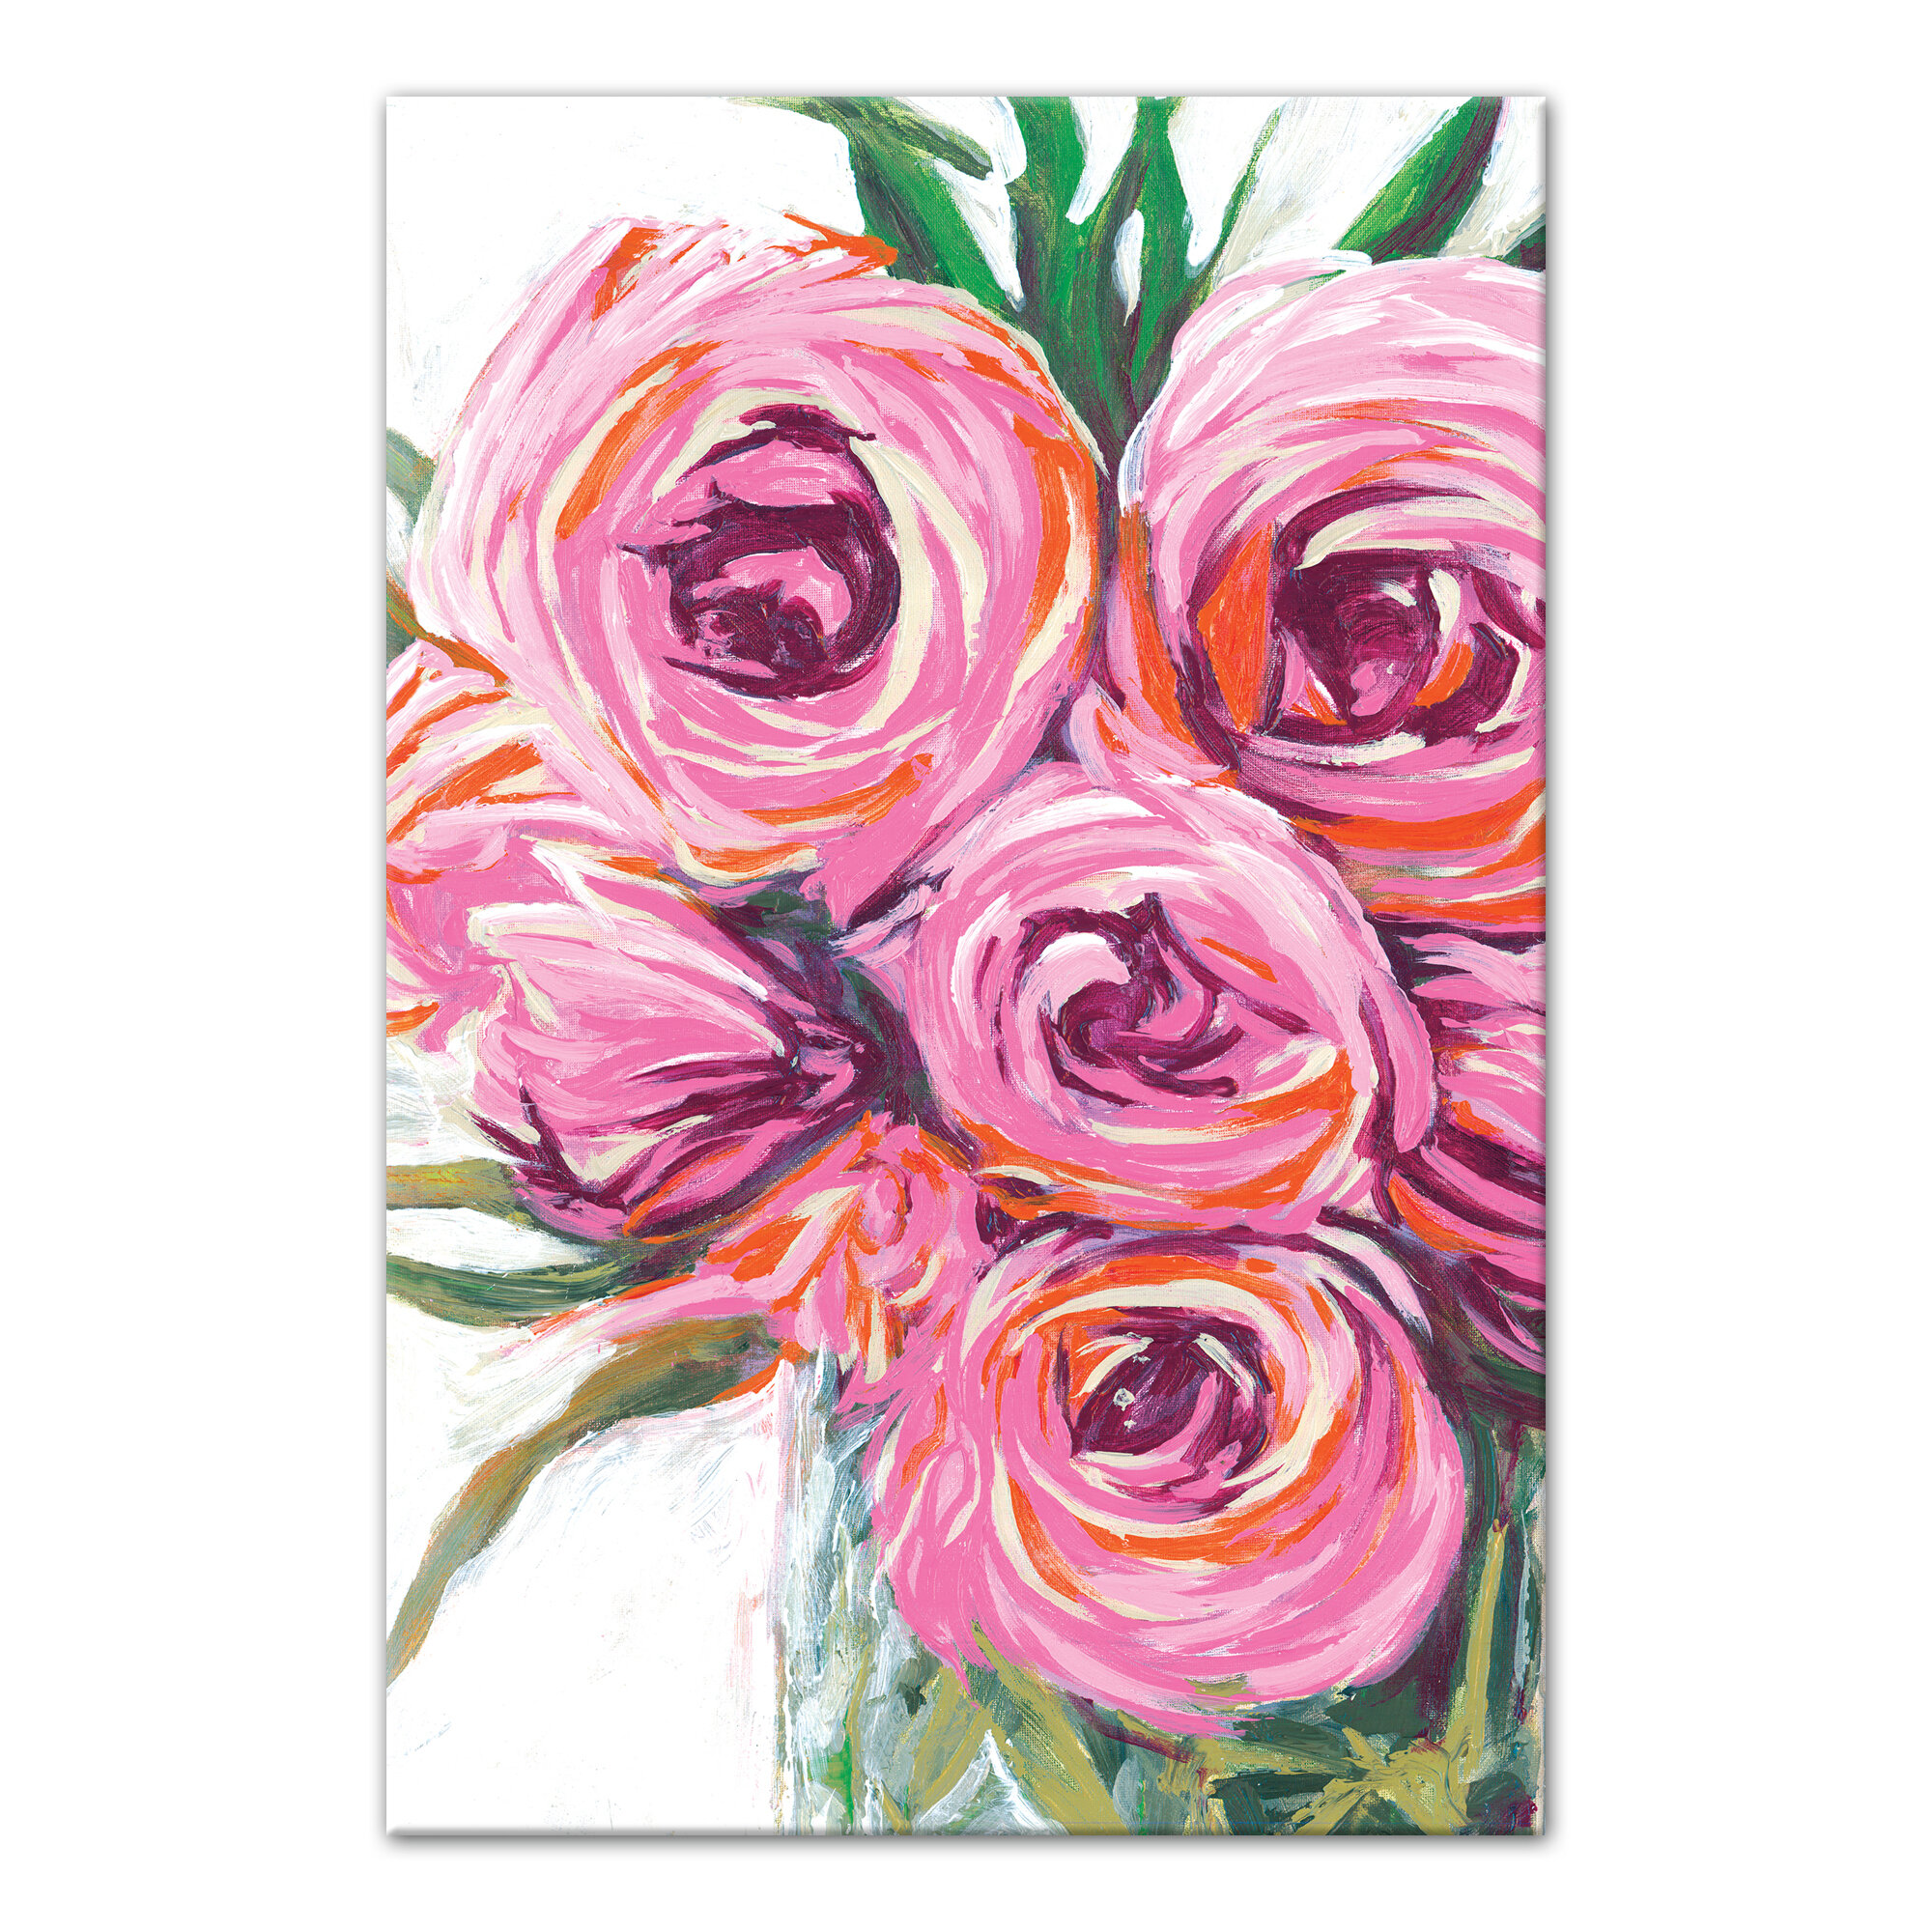 Vase with bright flowers acrylic painting print on canvas